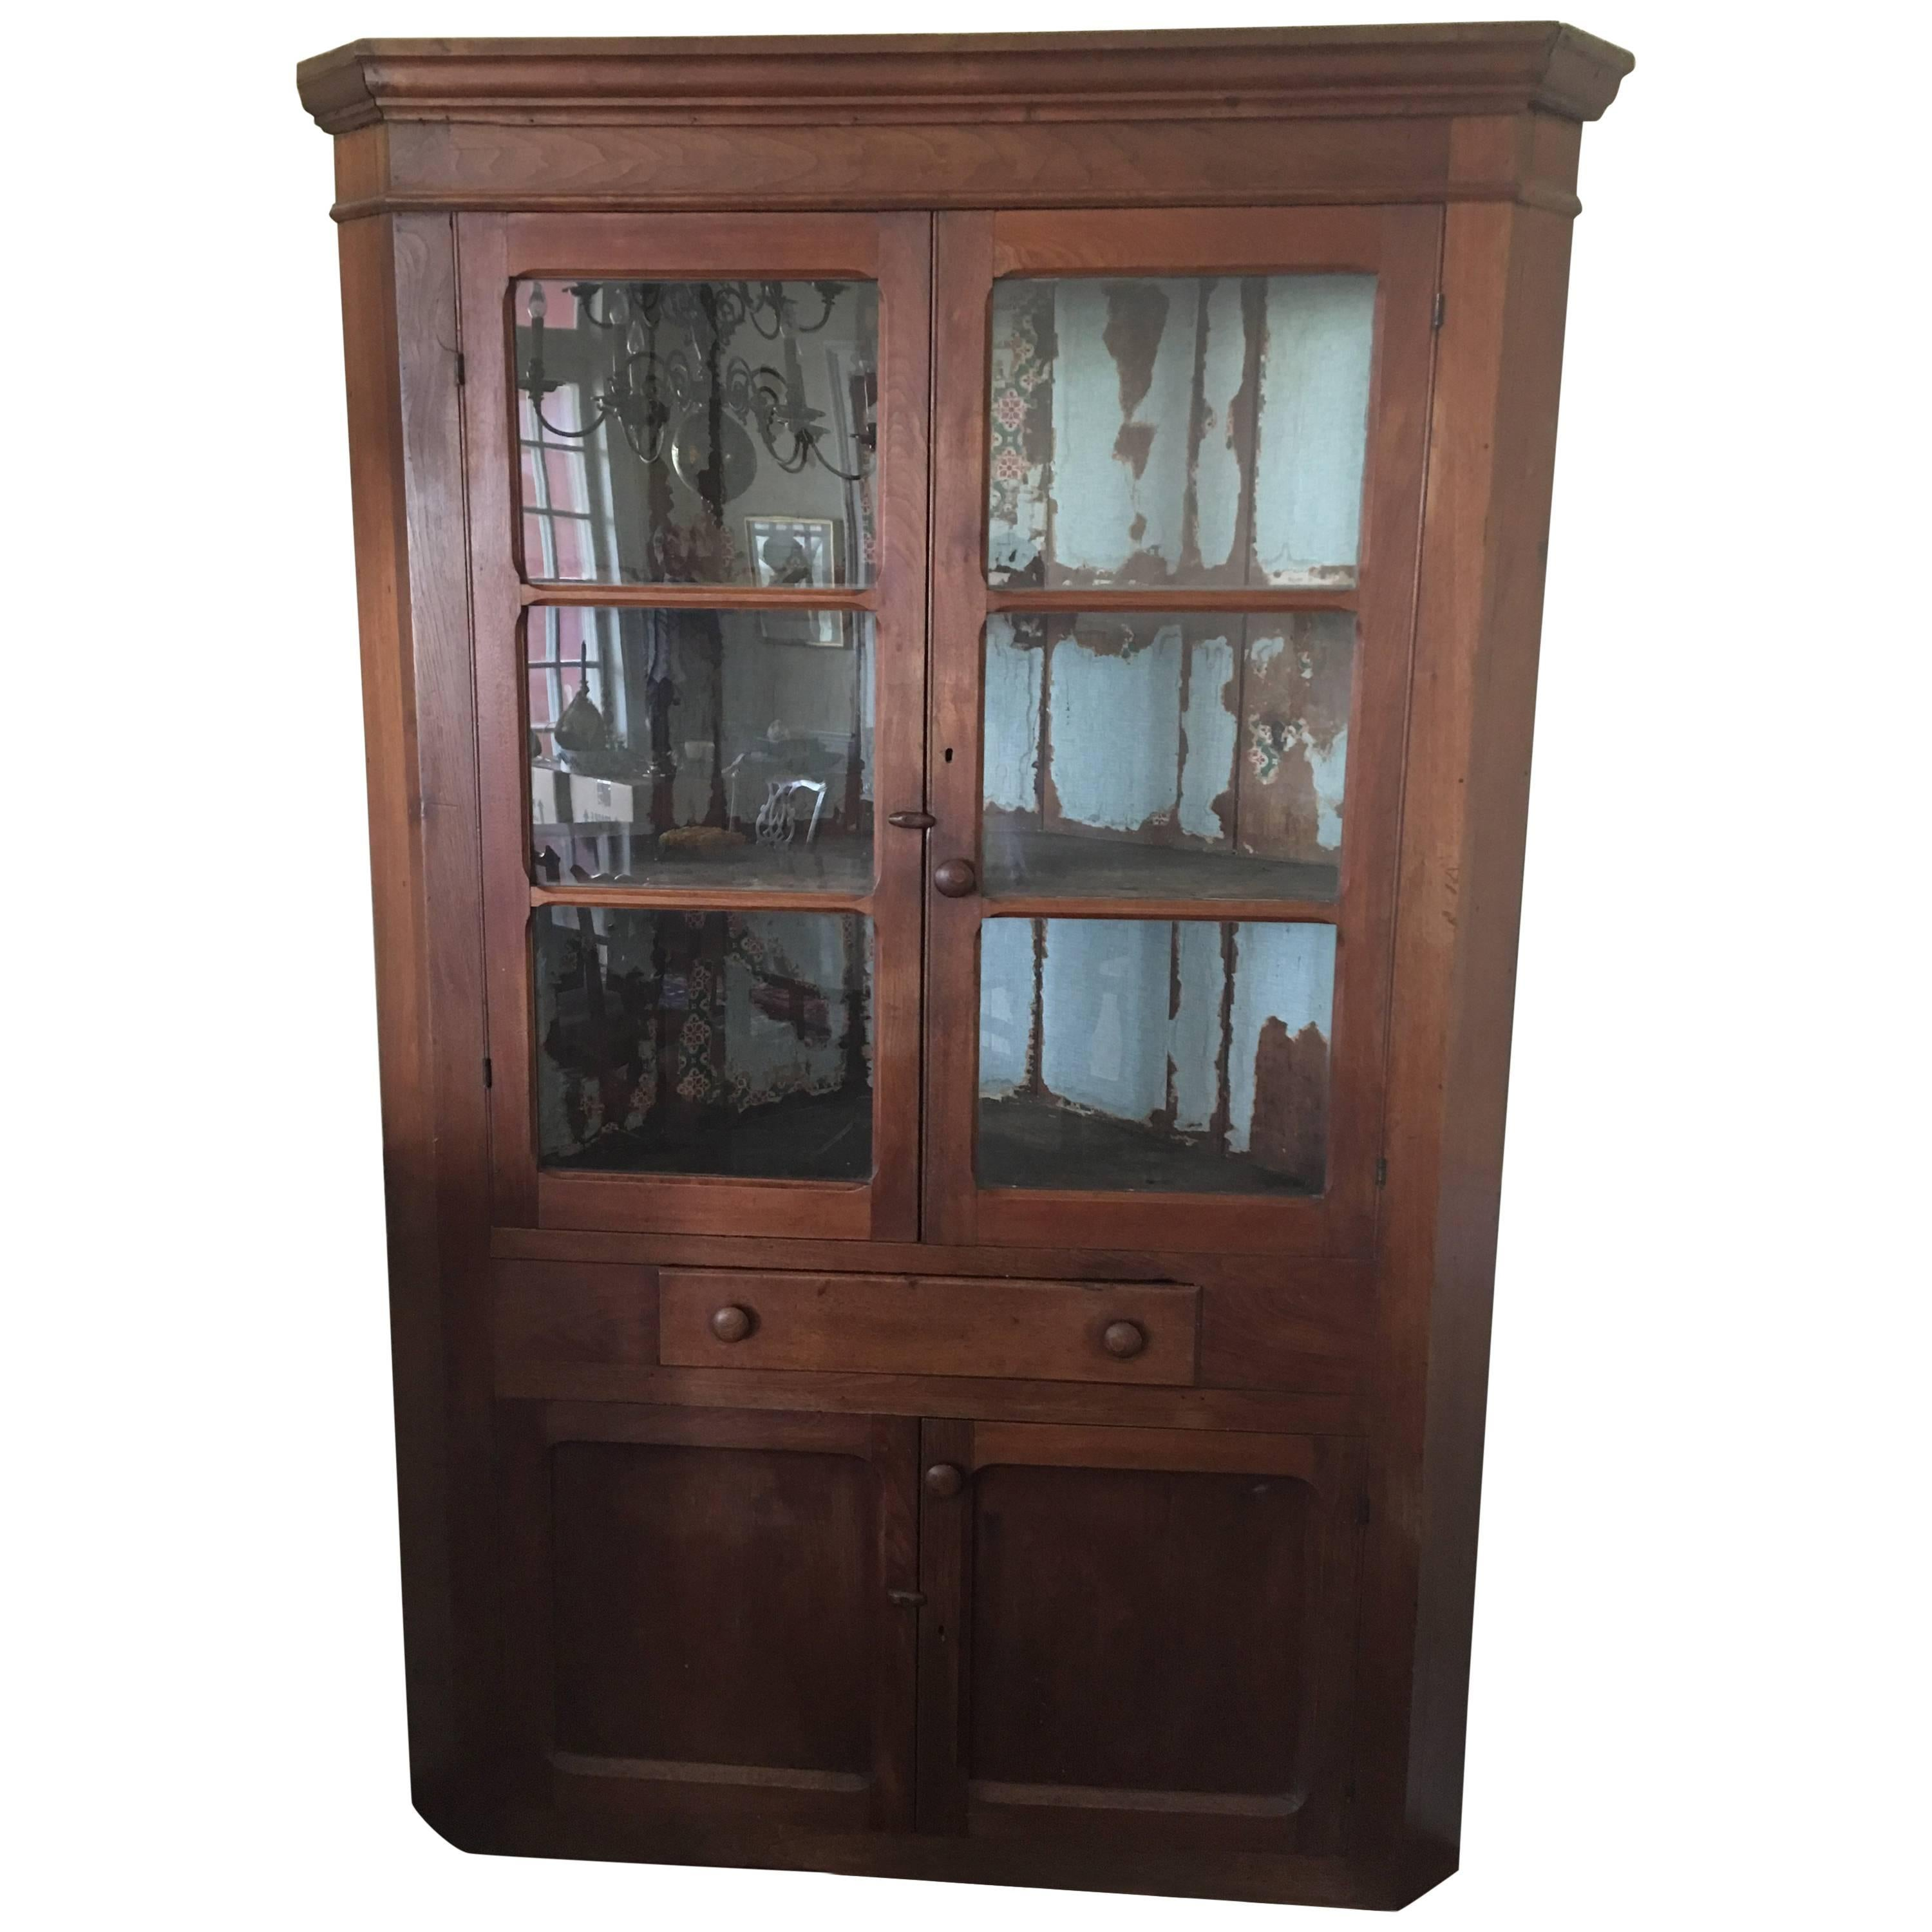 Beau 19th Century Primitive Colonial Walnut Hutch Cupboard Cabinet With Blue  Paint For Sale At 1stdibs